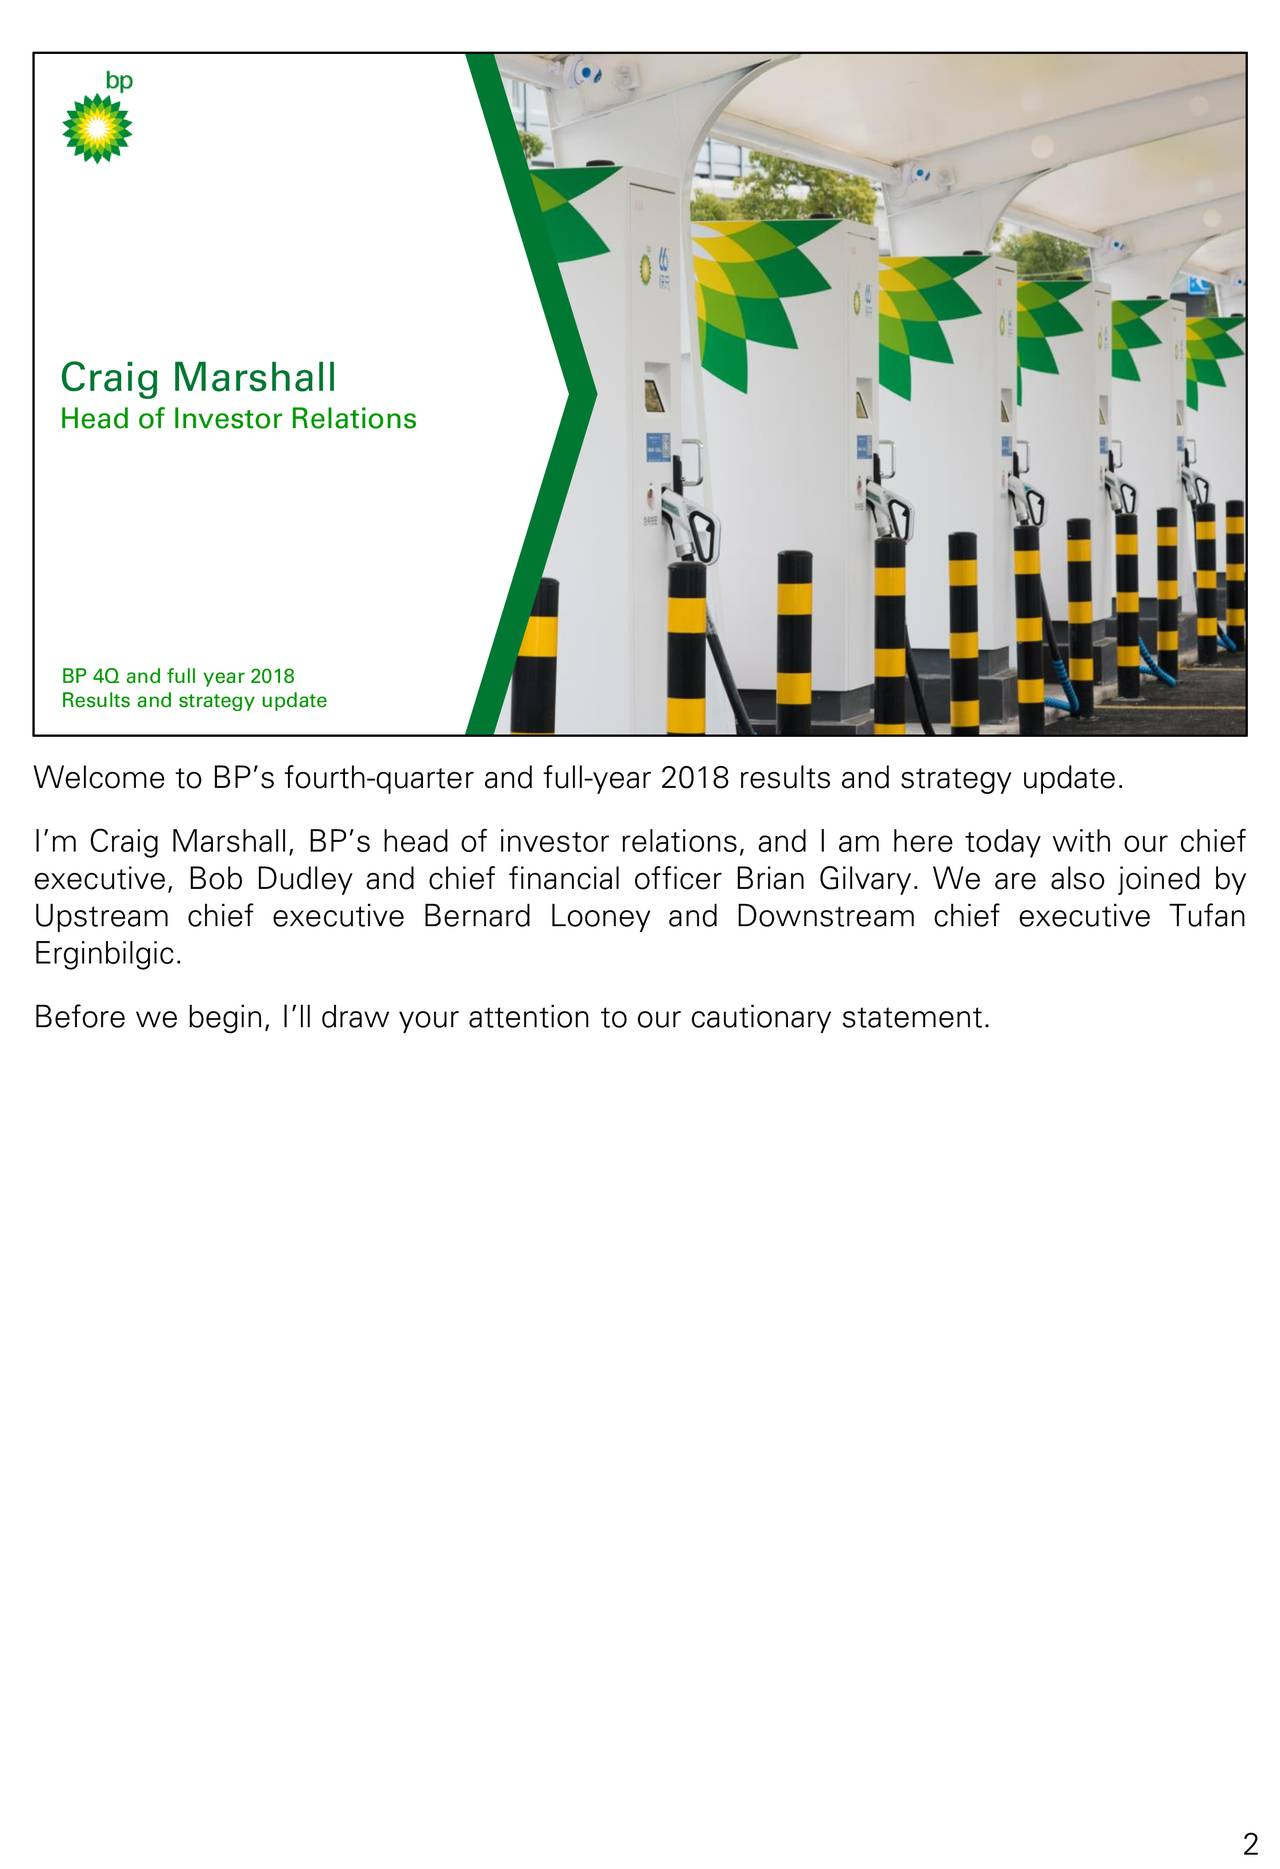 Head of Investor Relations BP 4Q and full year 2018 BP 4Q & FULL YEAR 2018 RESULTS & STRATEGY UPDATE keep a2vancing Welcome to BP's fourth-quarter and full-year 2018 results and strategy update. I'm Craig Marshall, BP's head of investor relations, and I am here today with our chief executive, Bob Dudley and chief financial officer Brian Gilvary. We are also joined by Upstream chief executive Bernard Looney and Downstream chief executive Tufan Erginbilgic. Before we begin, I'll draw your attention to our cautionary statement. 2